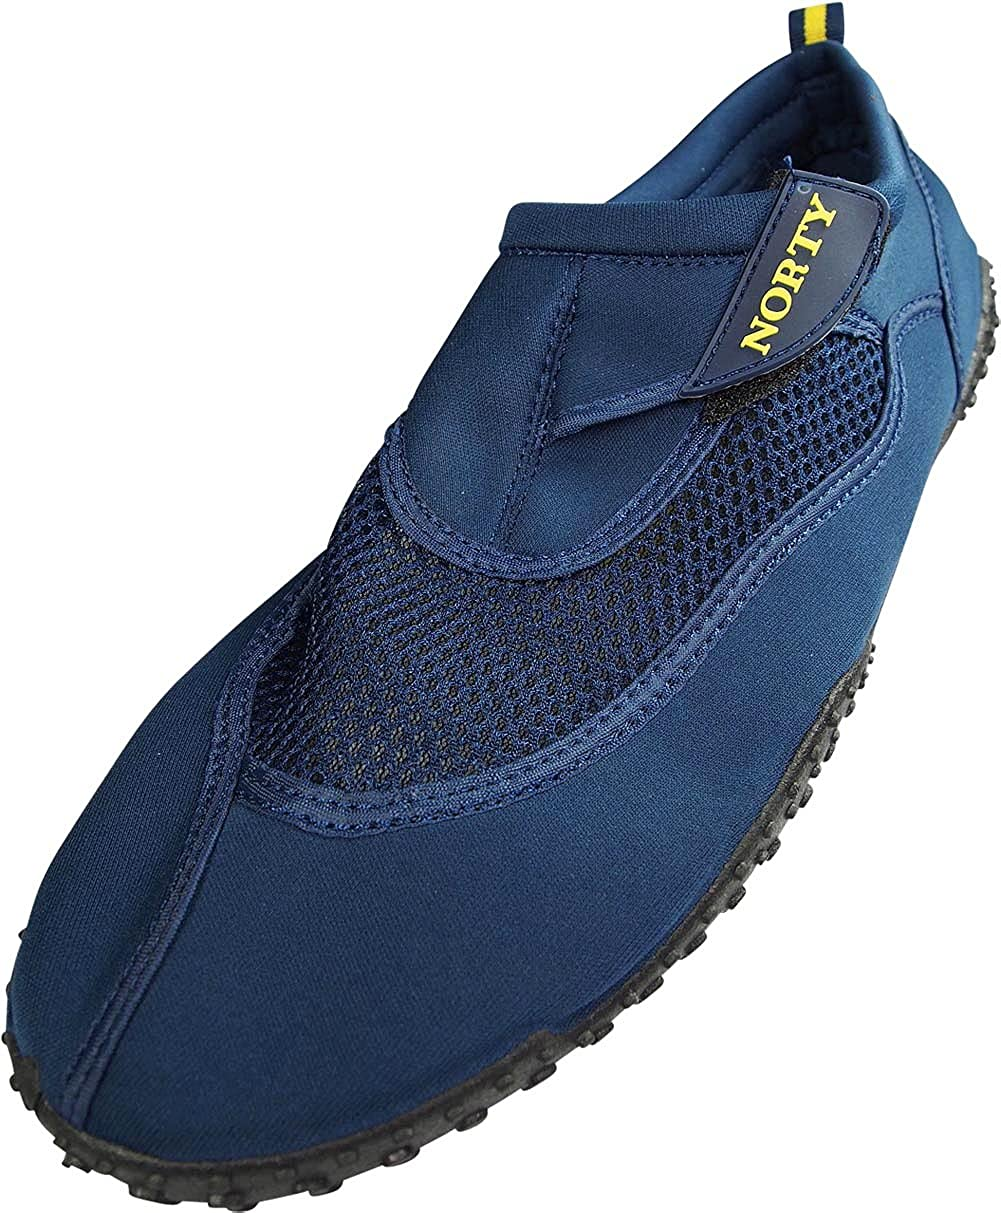 Beach and Sports NORTY Mens Big Sizes 13-15 Aqua Sock Wave Water Shoes Waterproof Slip-Ons for Pool